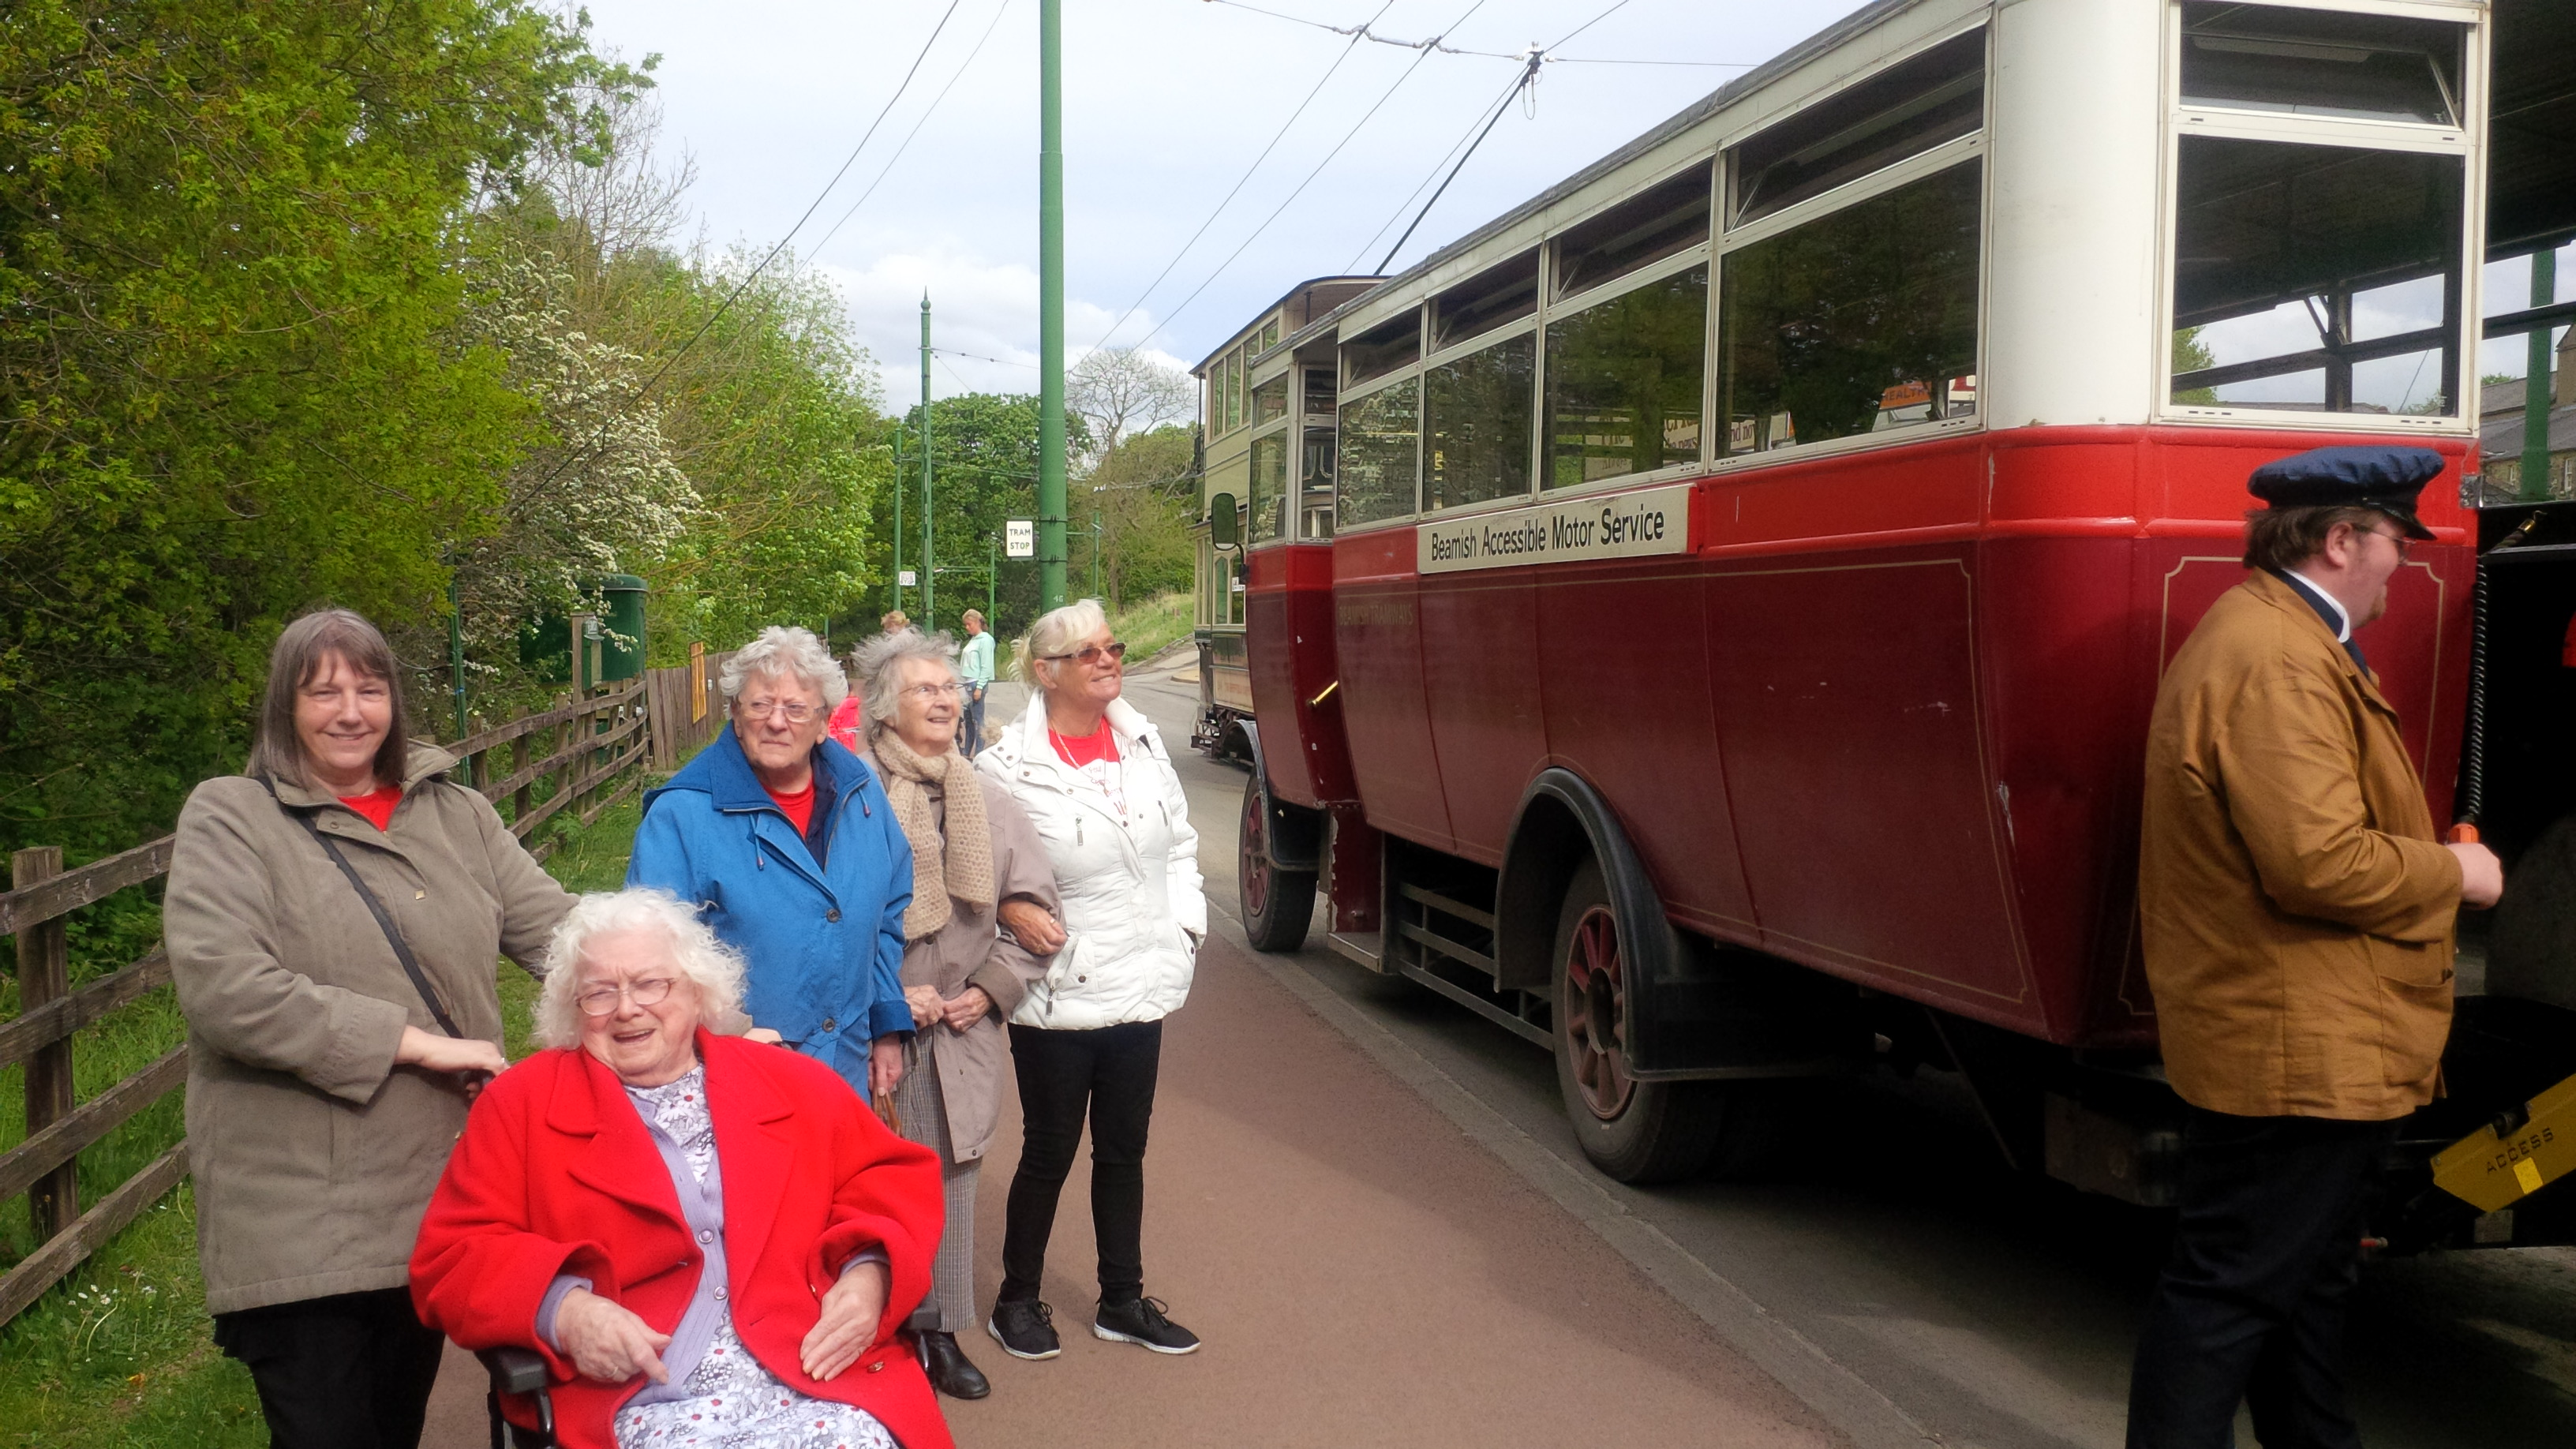 Four Seasons Care Centre Trip to Beamish: Key Healthcare is dedicated to caring for elderly residents in safe. We have multiple dementia care homes including our care home middlesbrough, our care home St. Helen and care home saltburn. We excel in monitoring and improving care levels.